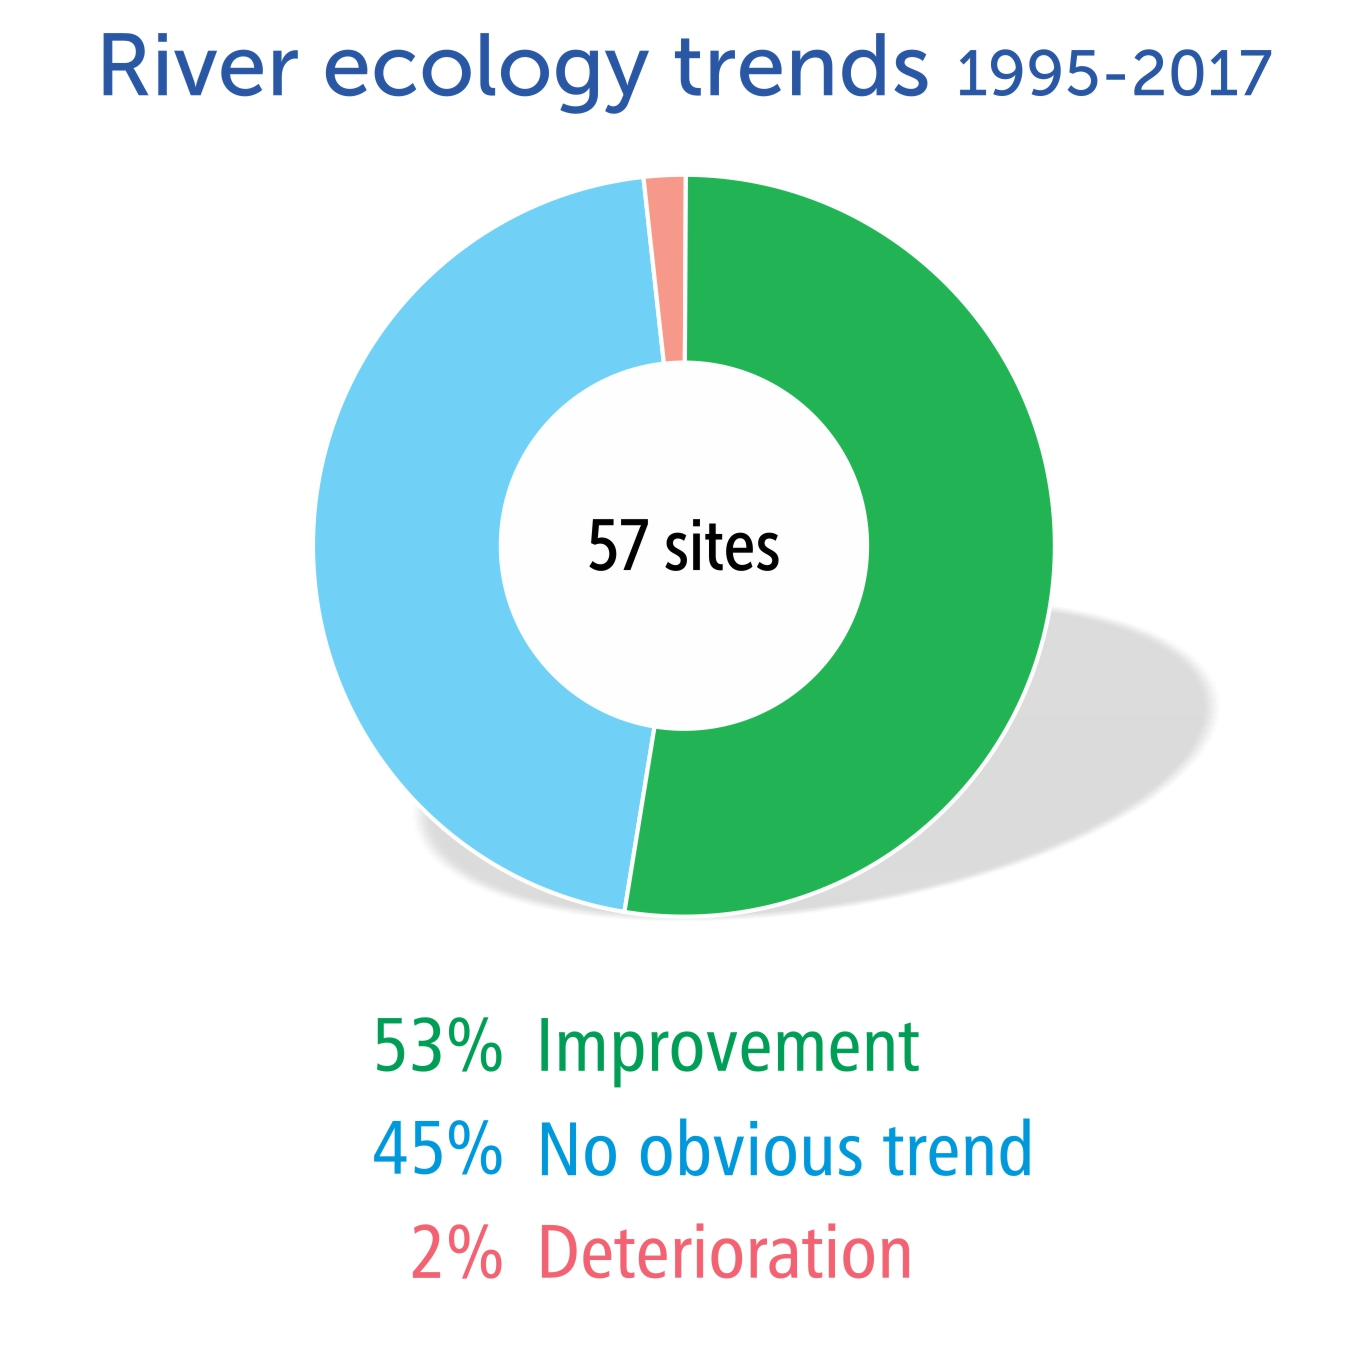 River ecology trends 1995-2017